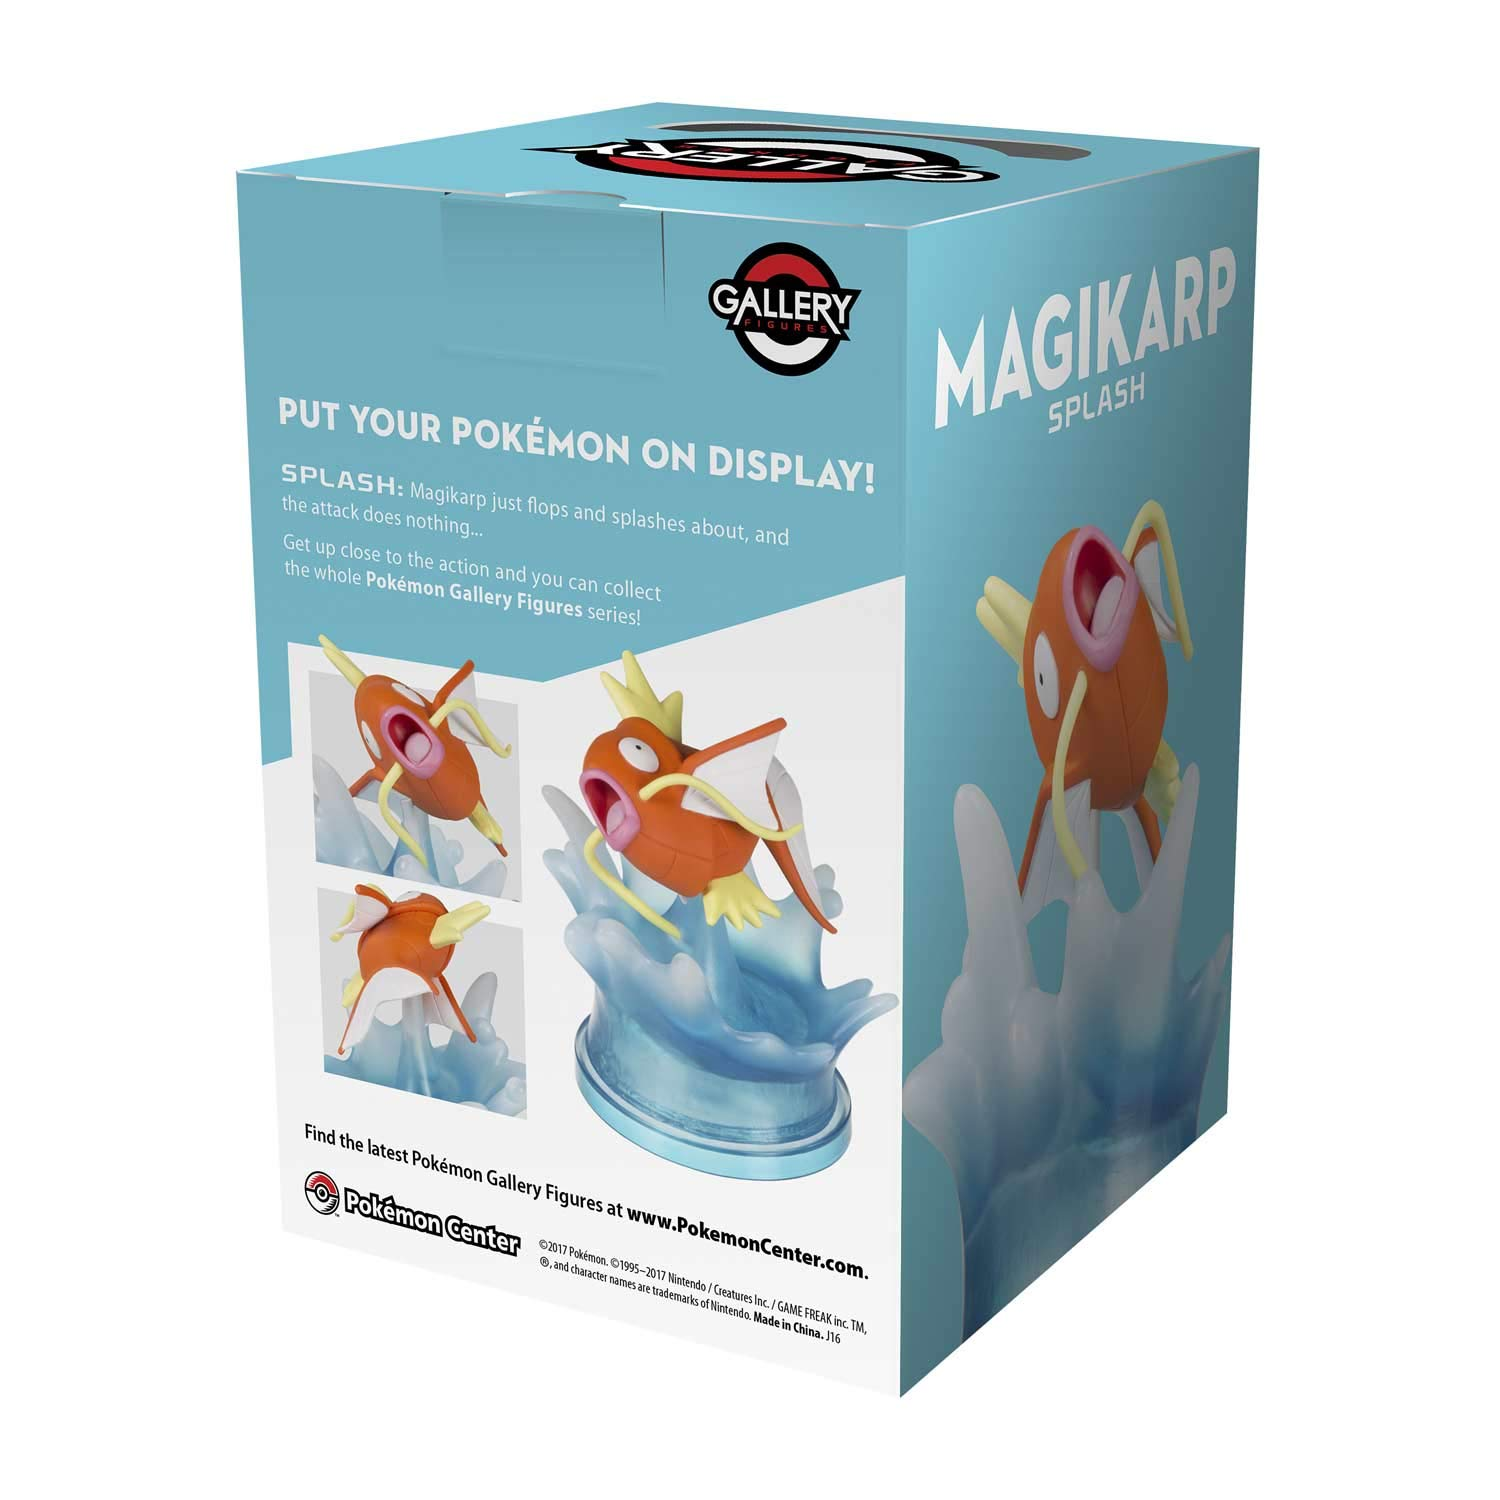 Amazon.com: Pokémon Center Gallery Figure: Magikarp - Splash: Toys & Games